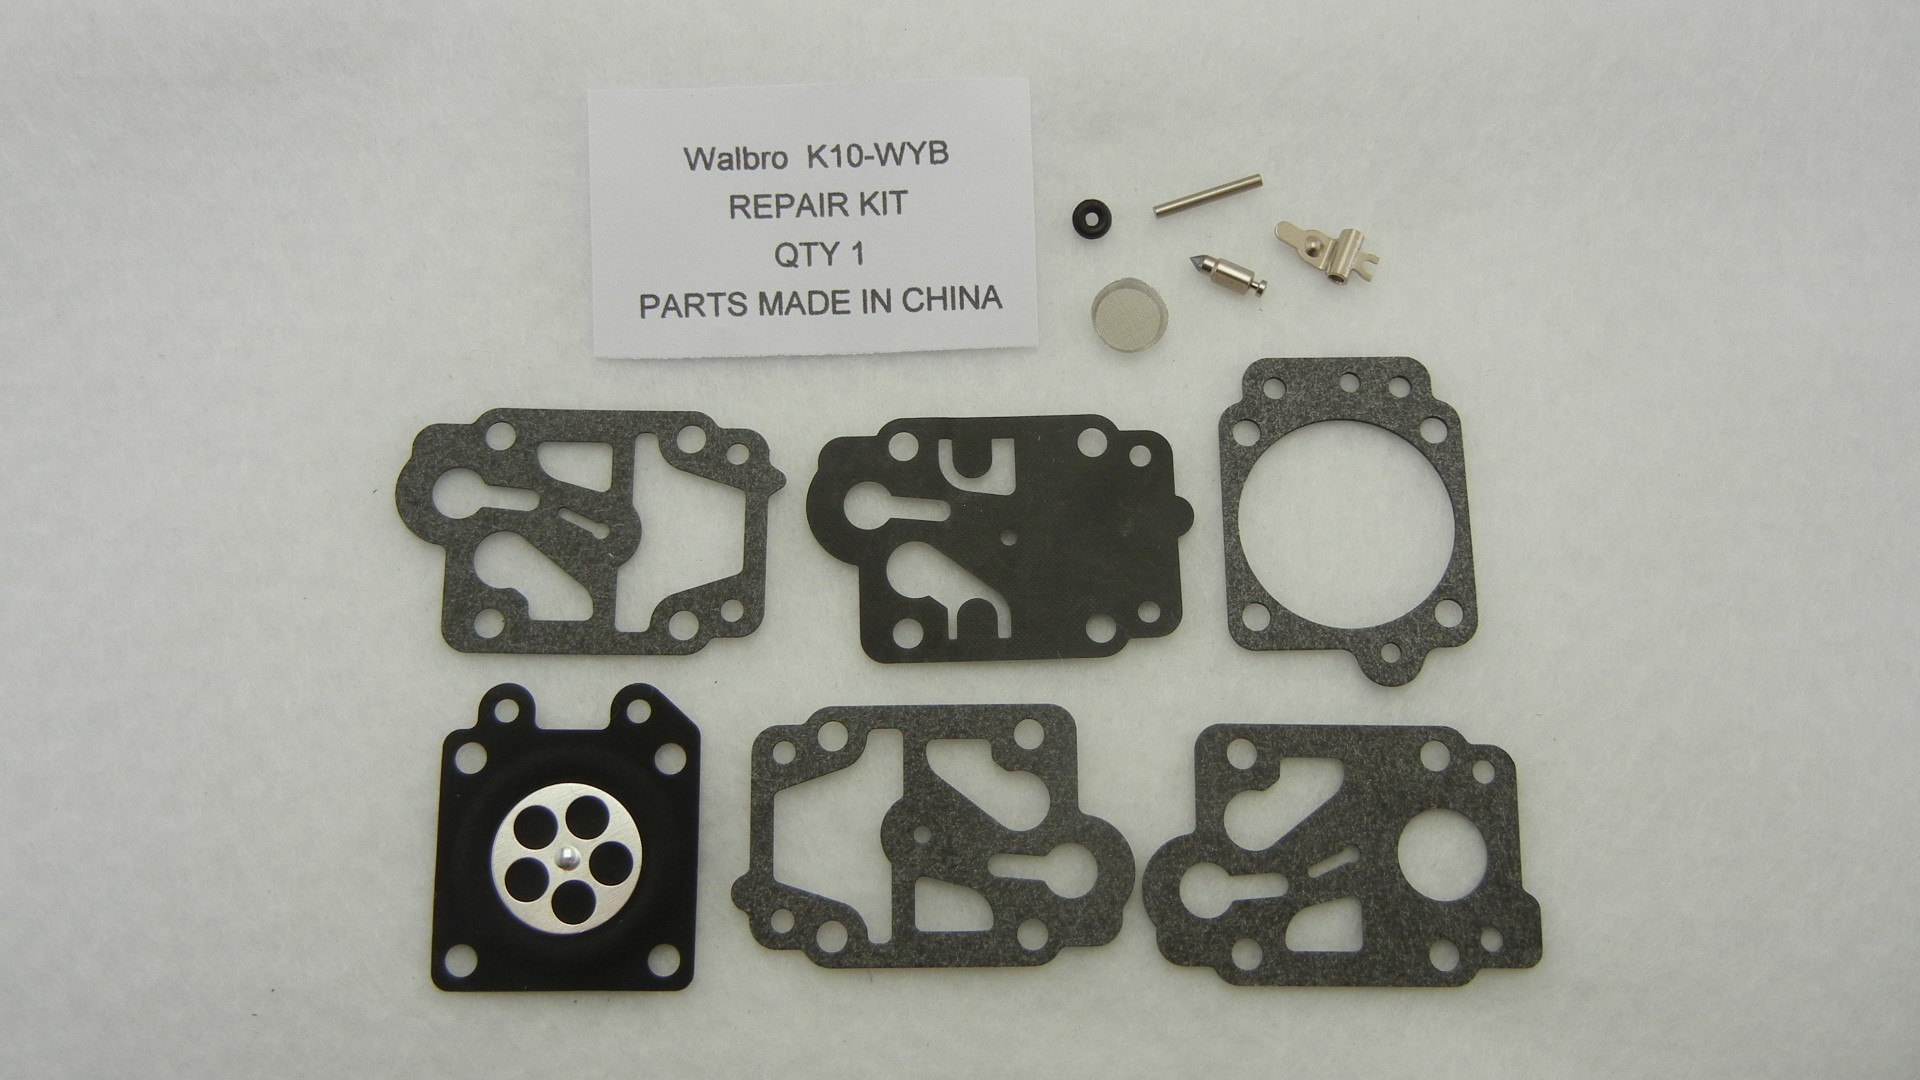 Carburetor gaskets and diaphragm kit replace Walbro K10-WYB